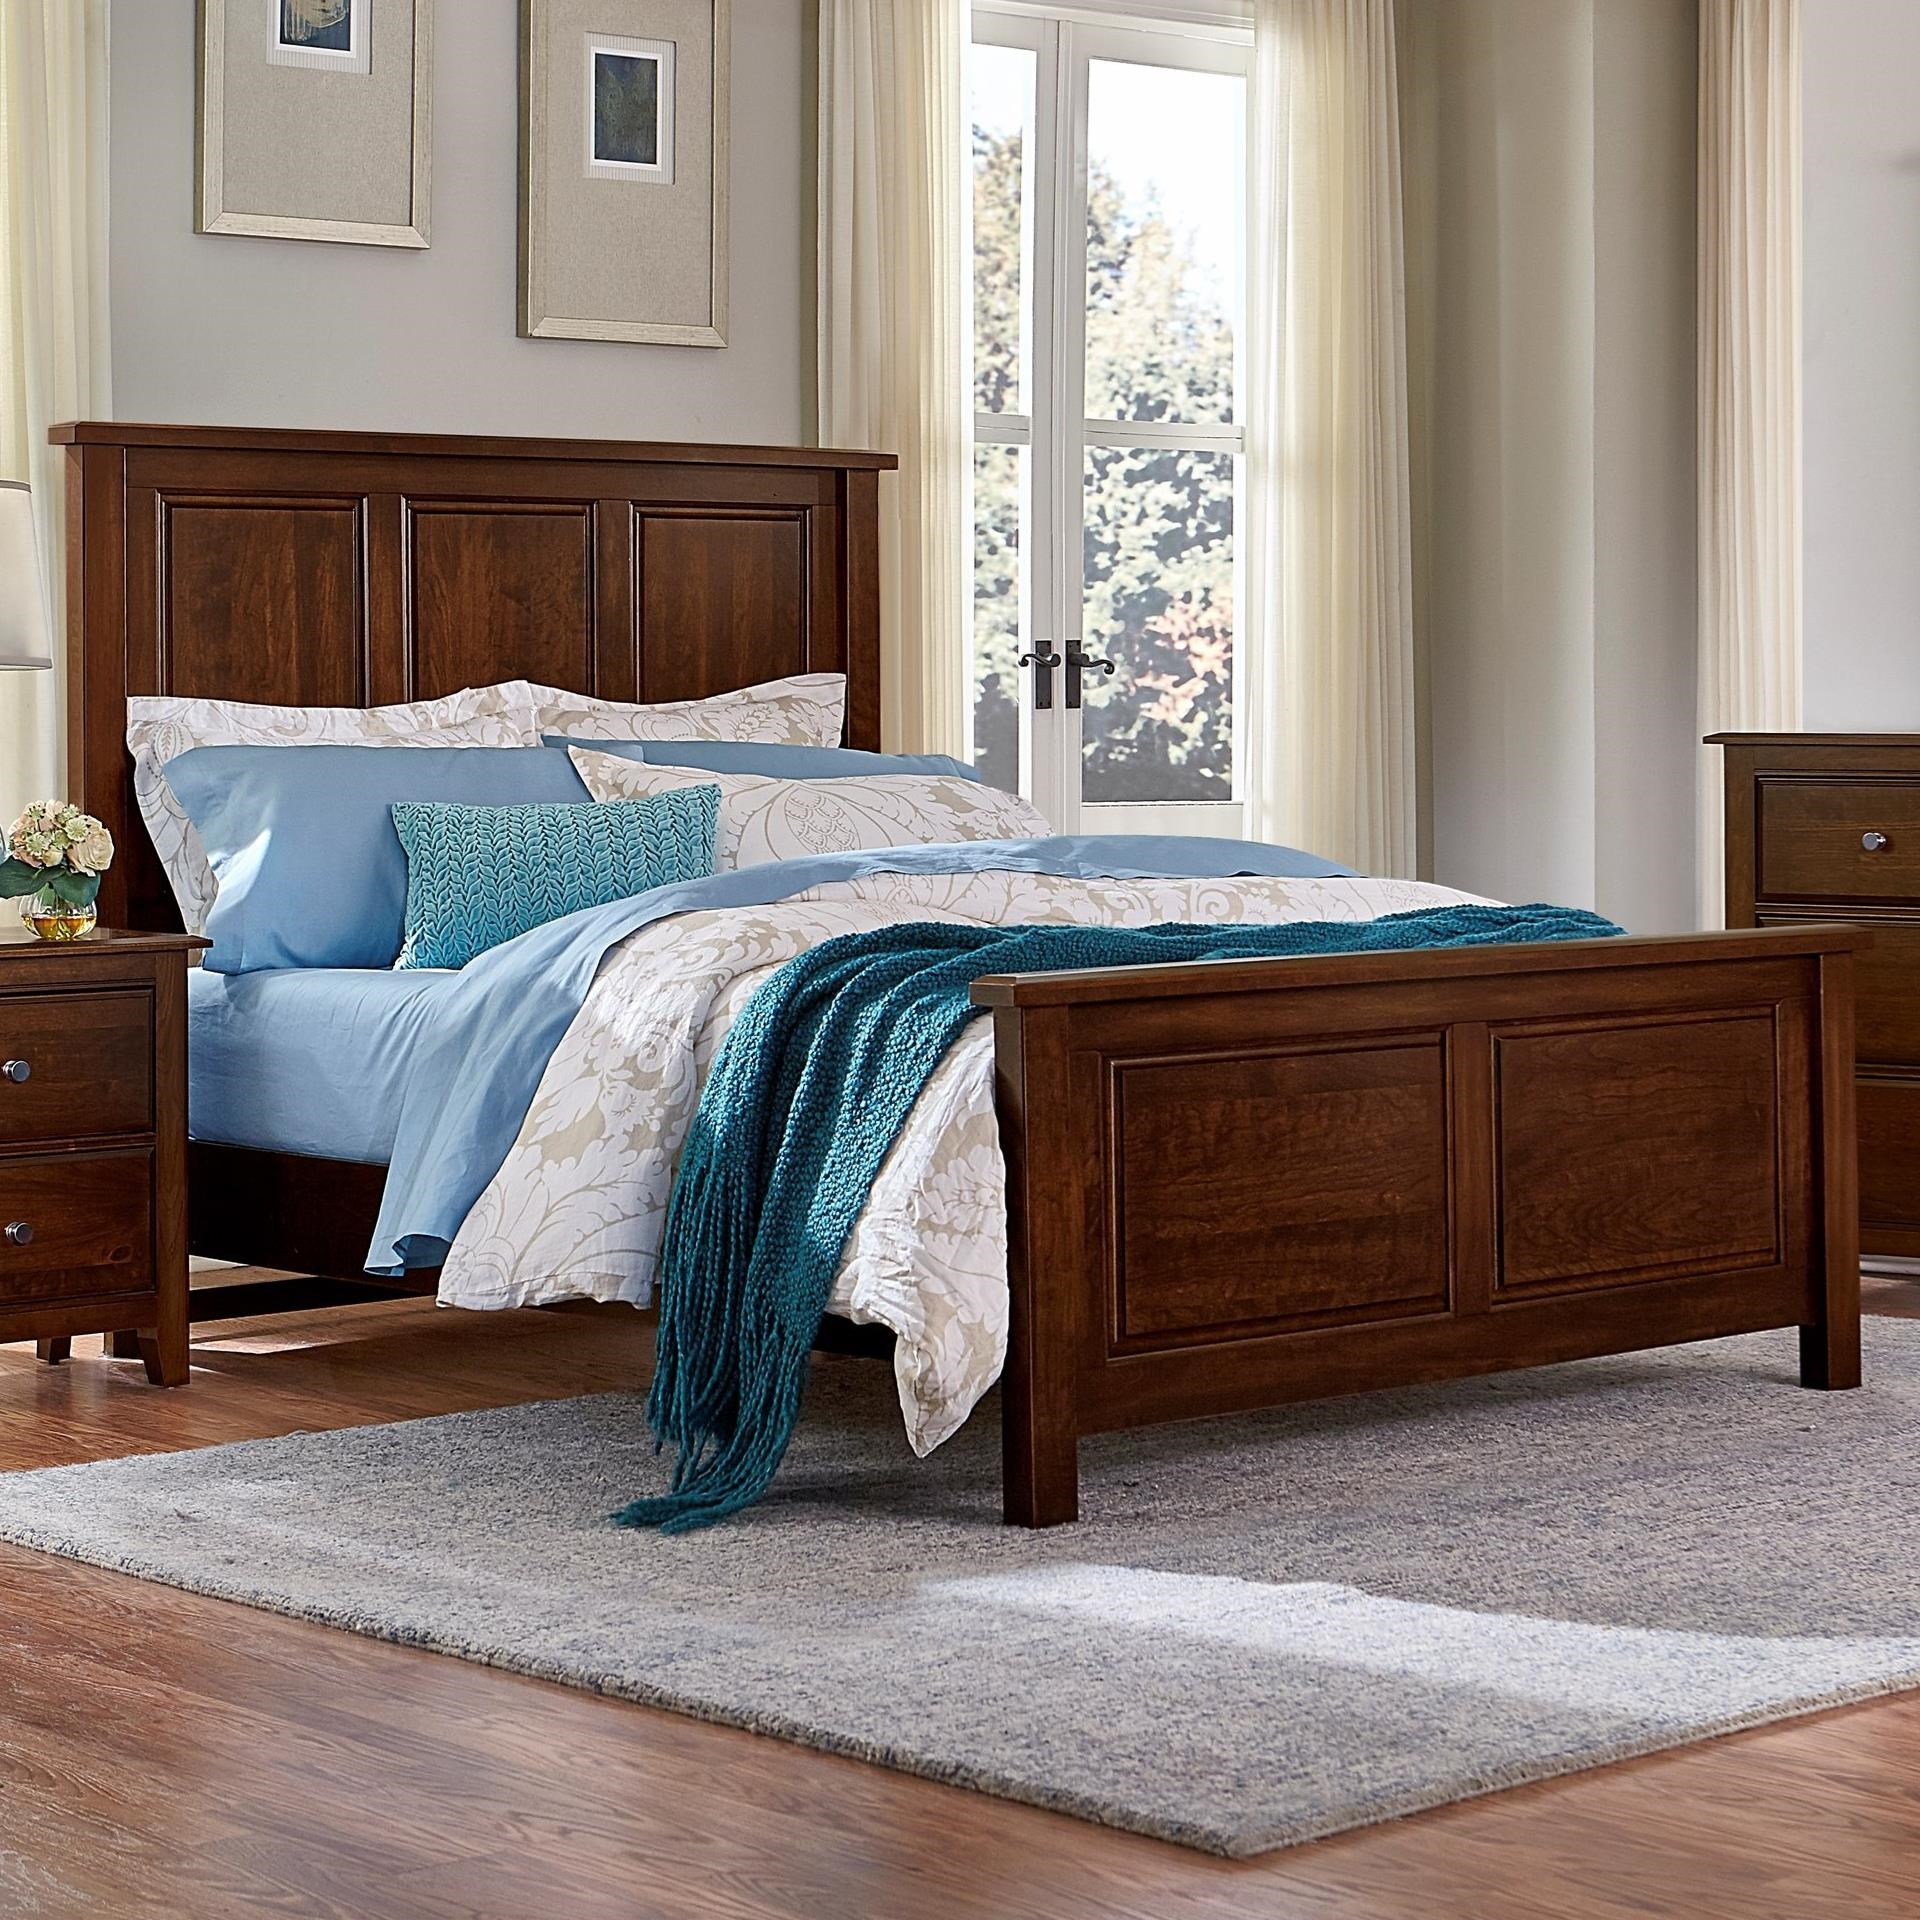 Artisan Choices Queen Panel Bed by Artisan & Post at Northeast Factory Direct